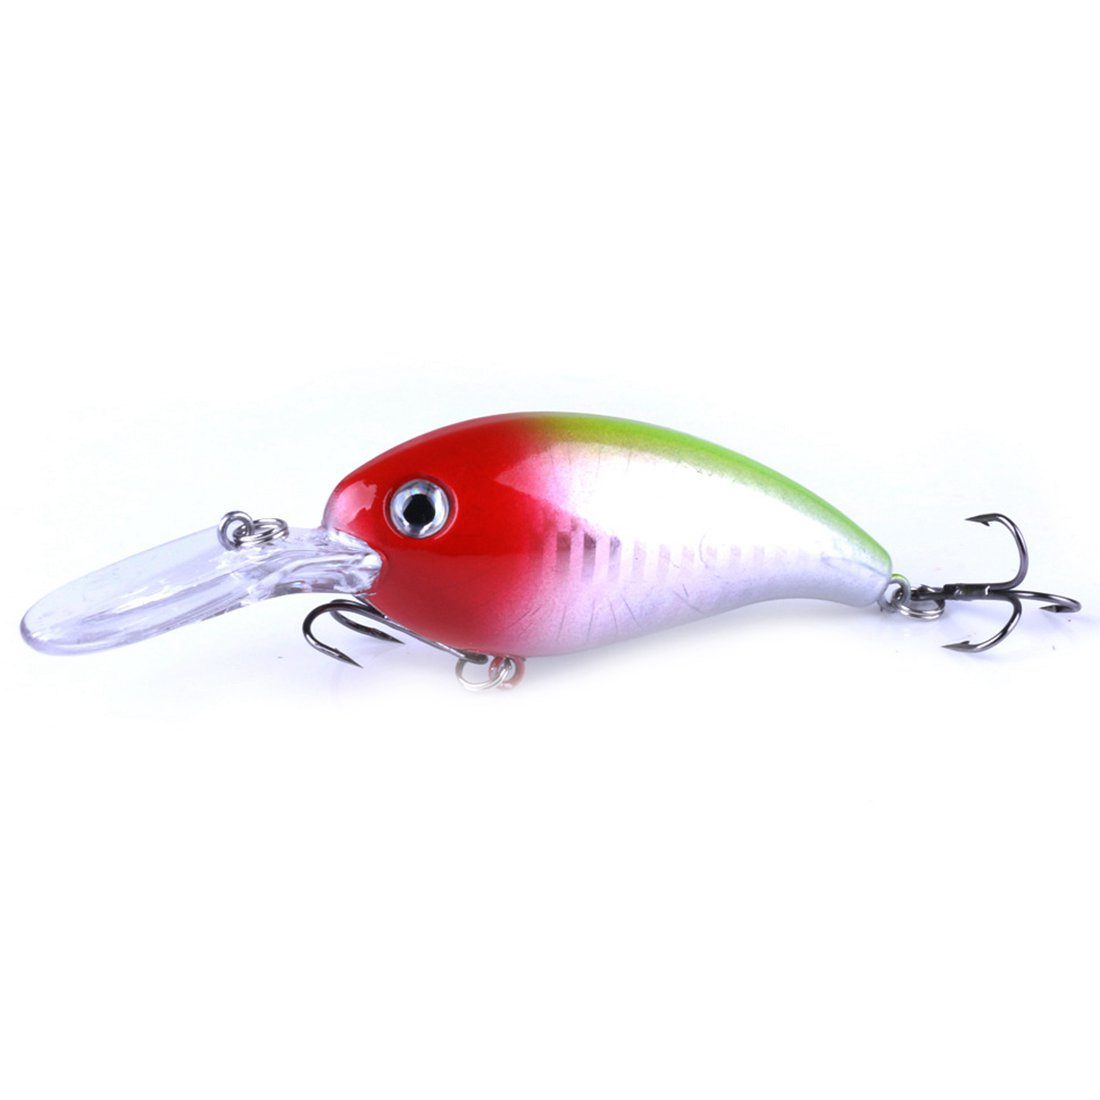 New HENG JIA Sea fishing road Asian rock bait 10cm / 14g bait Luya plastic bait, Red Silver